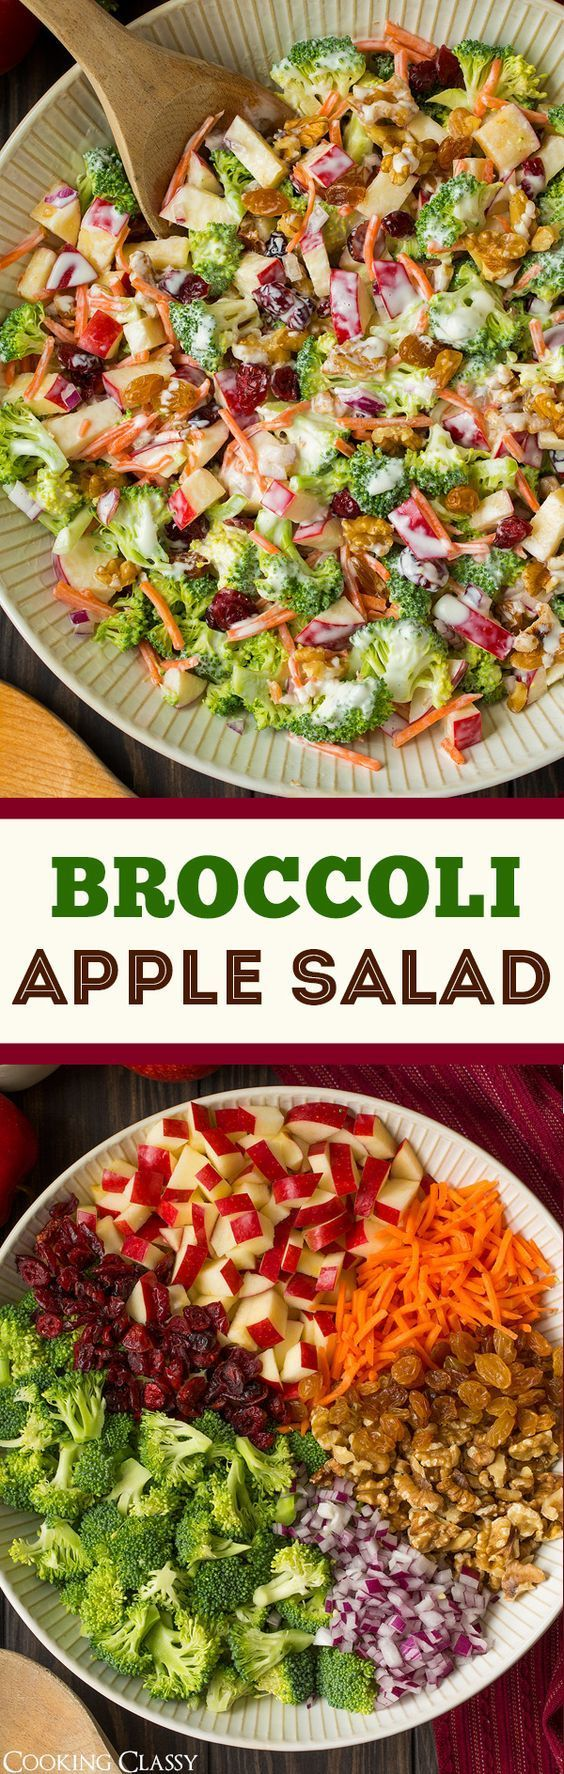 Broccoli Apple Salad – Cooking Classy